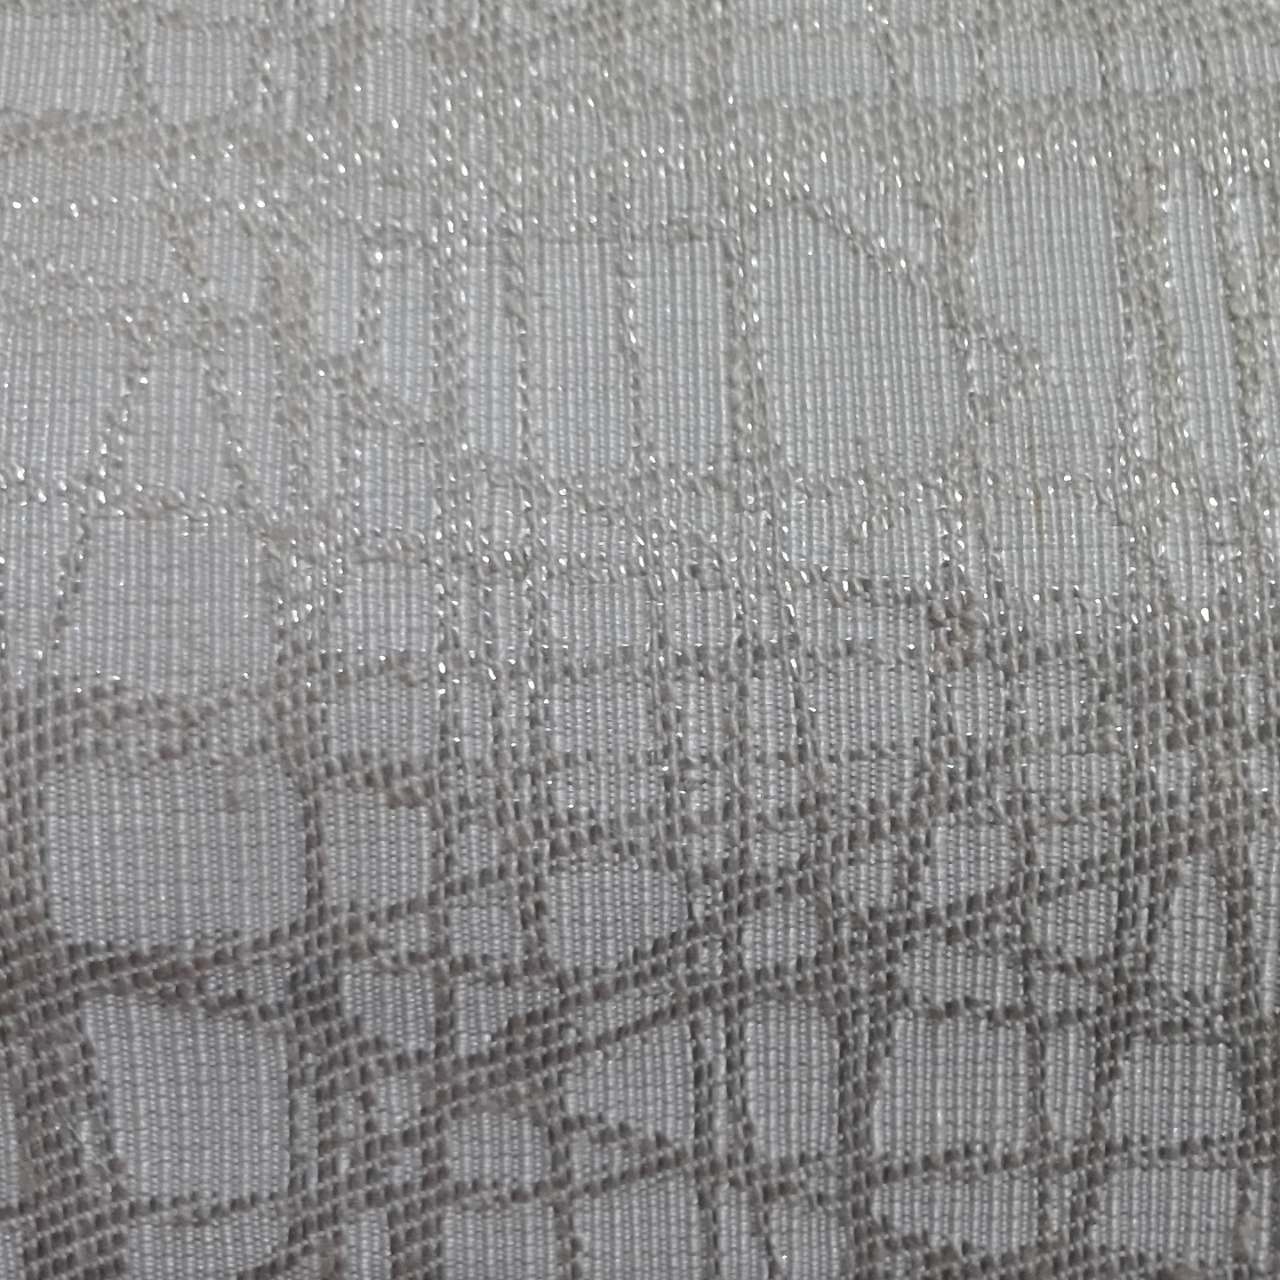 New Material Grey /Silver Geometric Flashes 525 cm x 150 cm